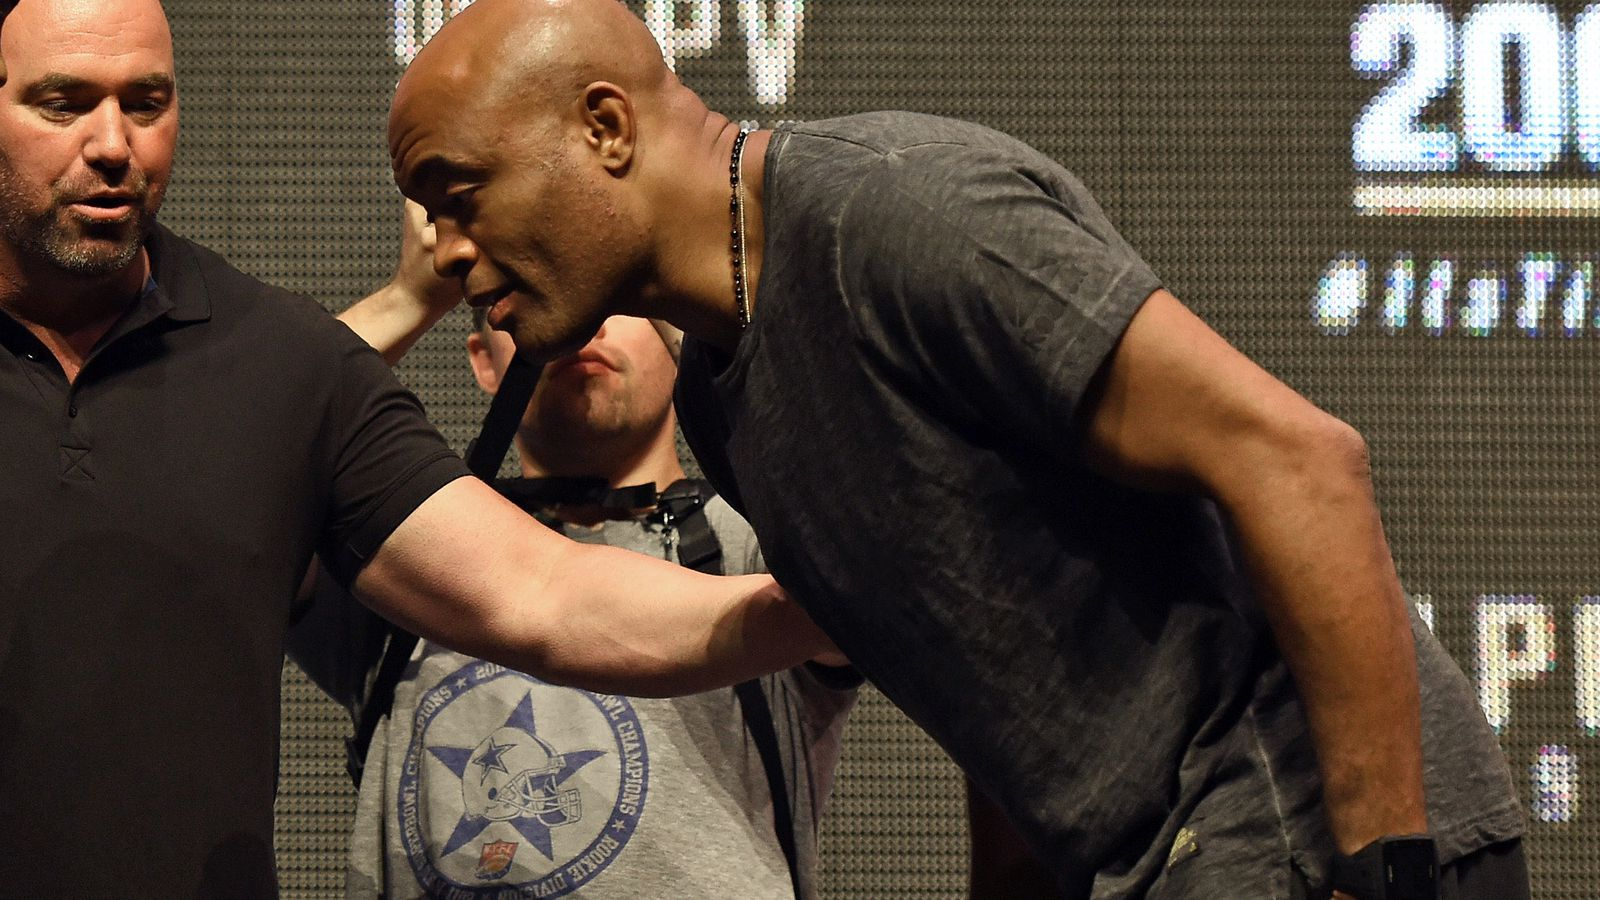 Dana White fires back at Anderson Silva as 'Spider' squawks about UFC mistreatment